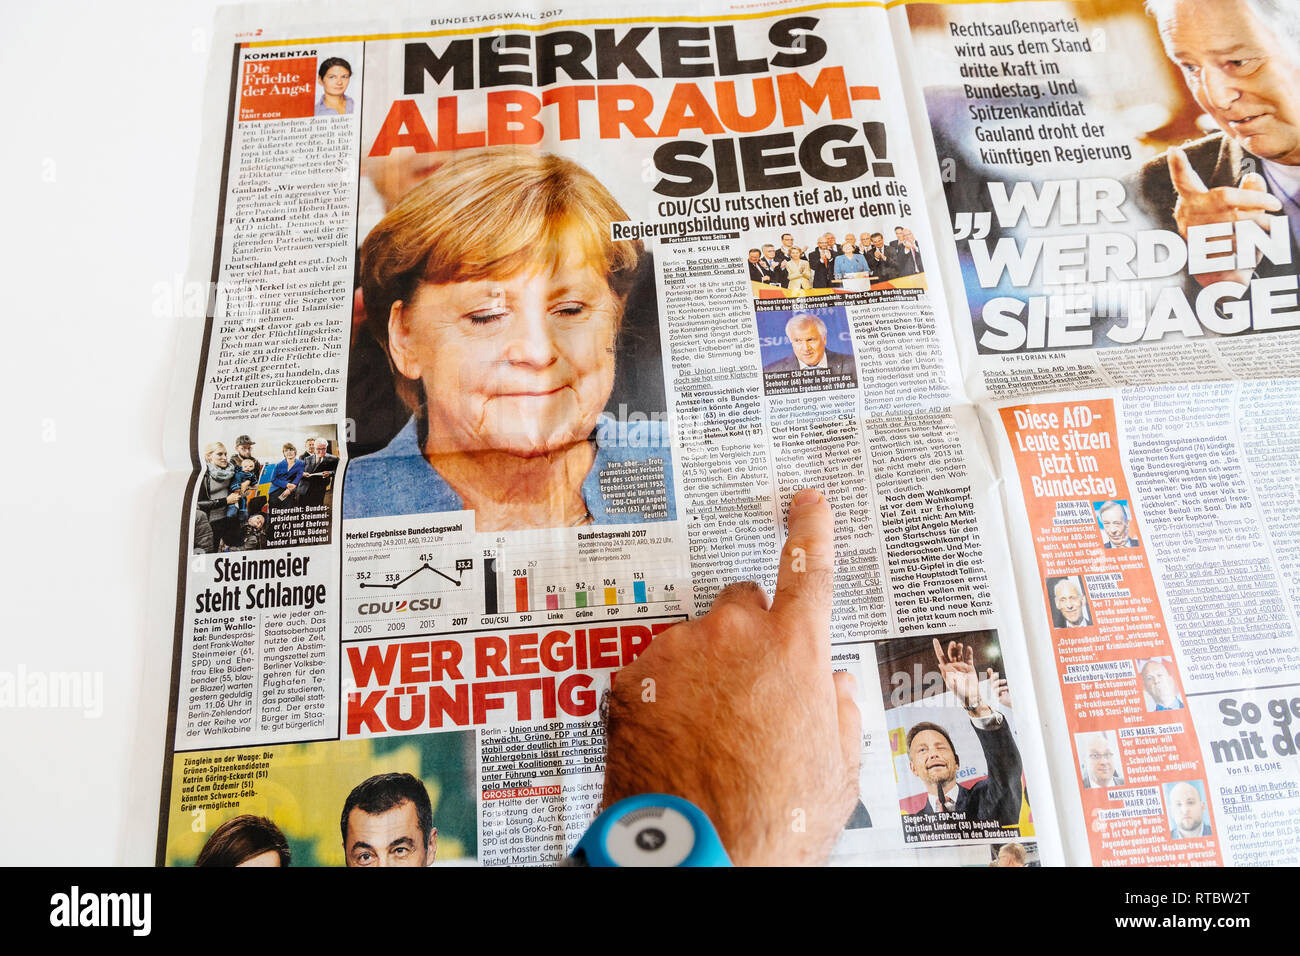 PARIS, FRANCE - SEP 25, 2017: Die Bild german newspaper man reading with portrait of Angela Merkel after election in Germany for the Chancellor of Germany, the head of the federal government - Stock Image